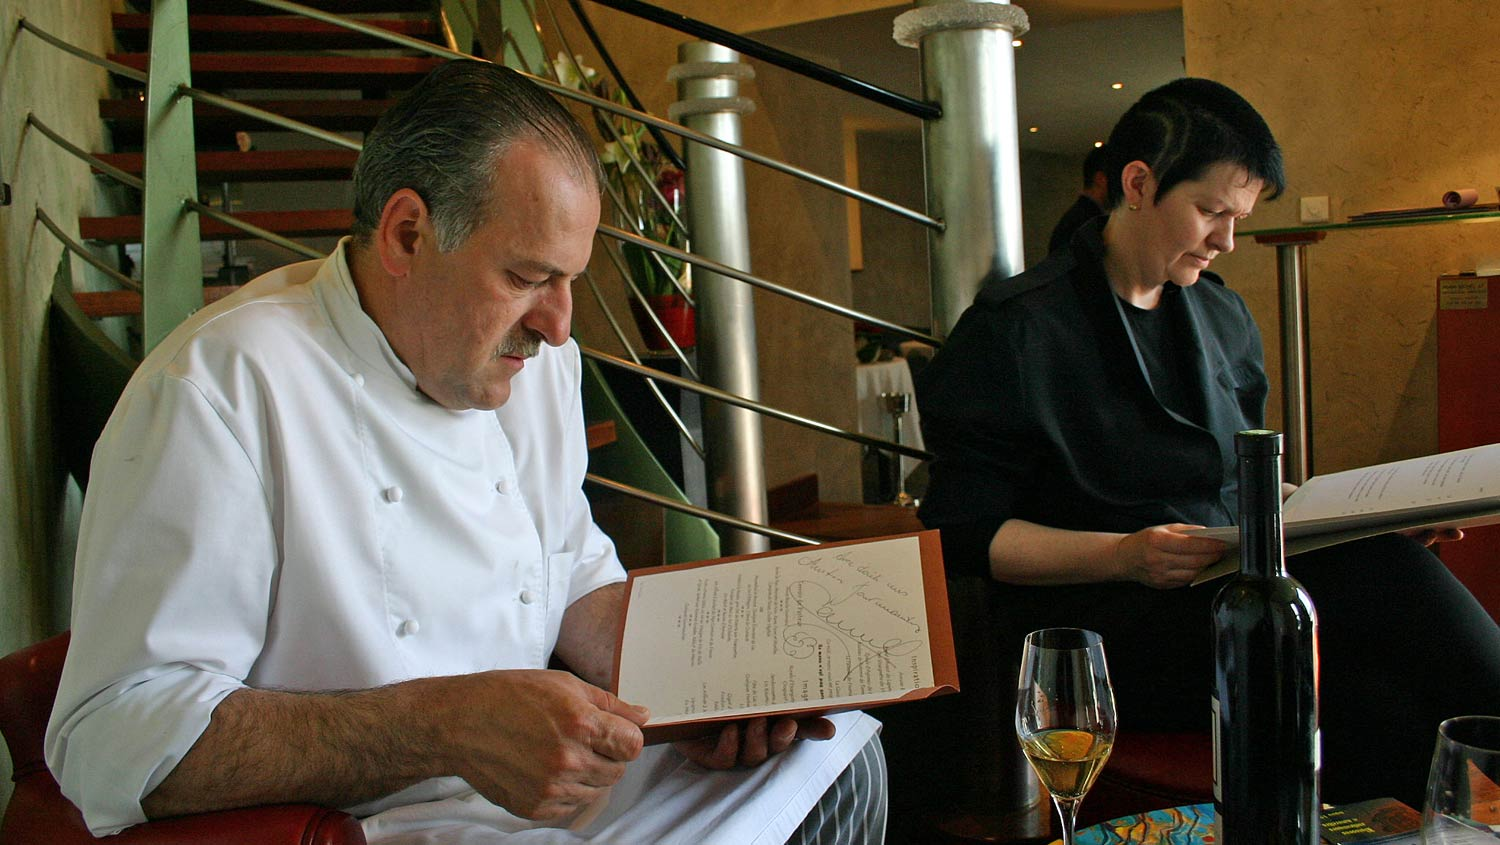 Véronique & Jean-Paul Abadie en 2004 en train de lire le menu dédicacé par Jean-Paul Jeunet le 22 mars